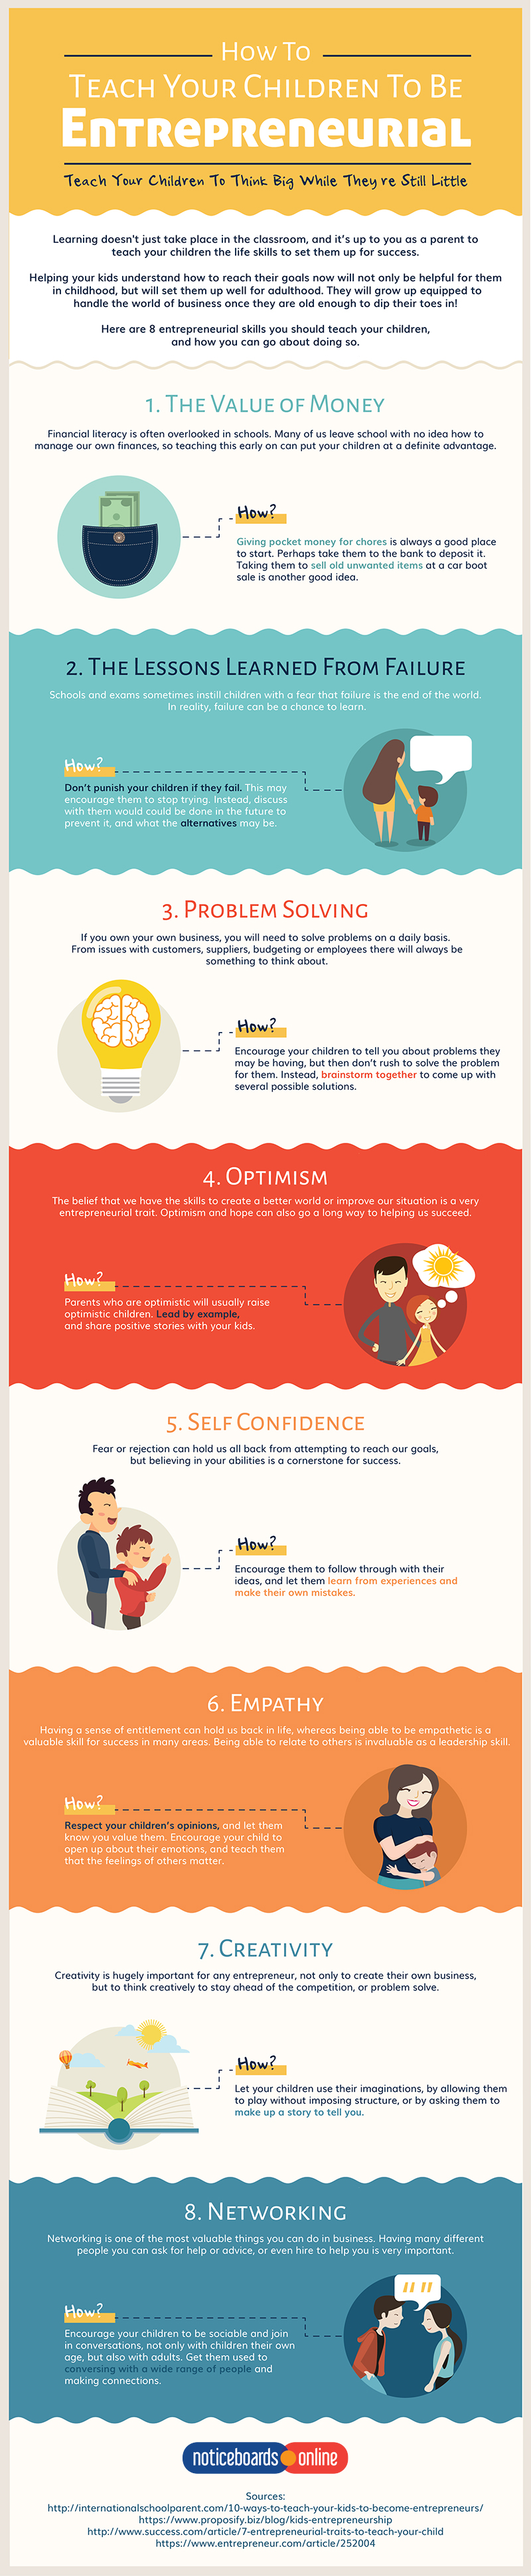 How To Teach Your Children To Be Entrepreneurial (INFOGRAPHIC)